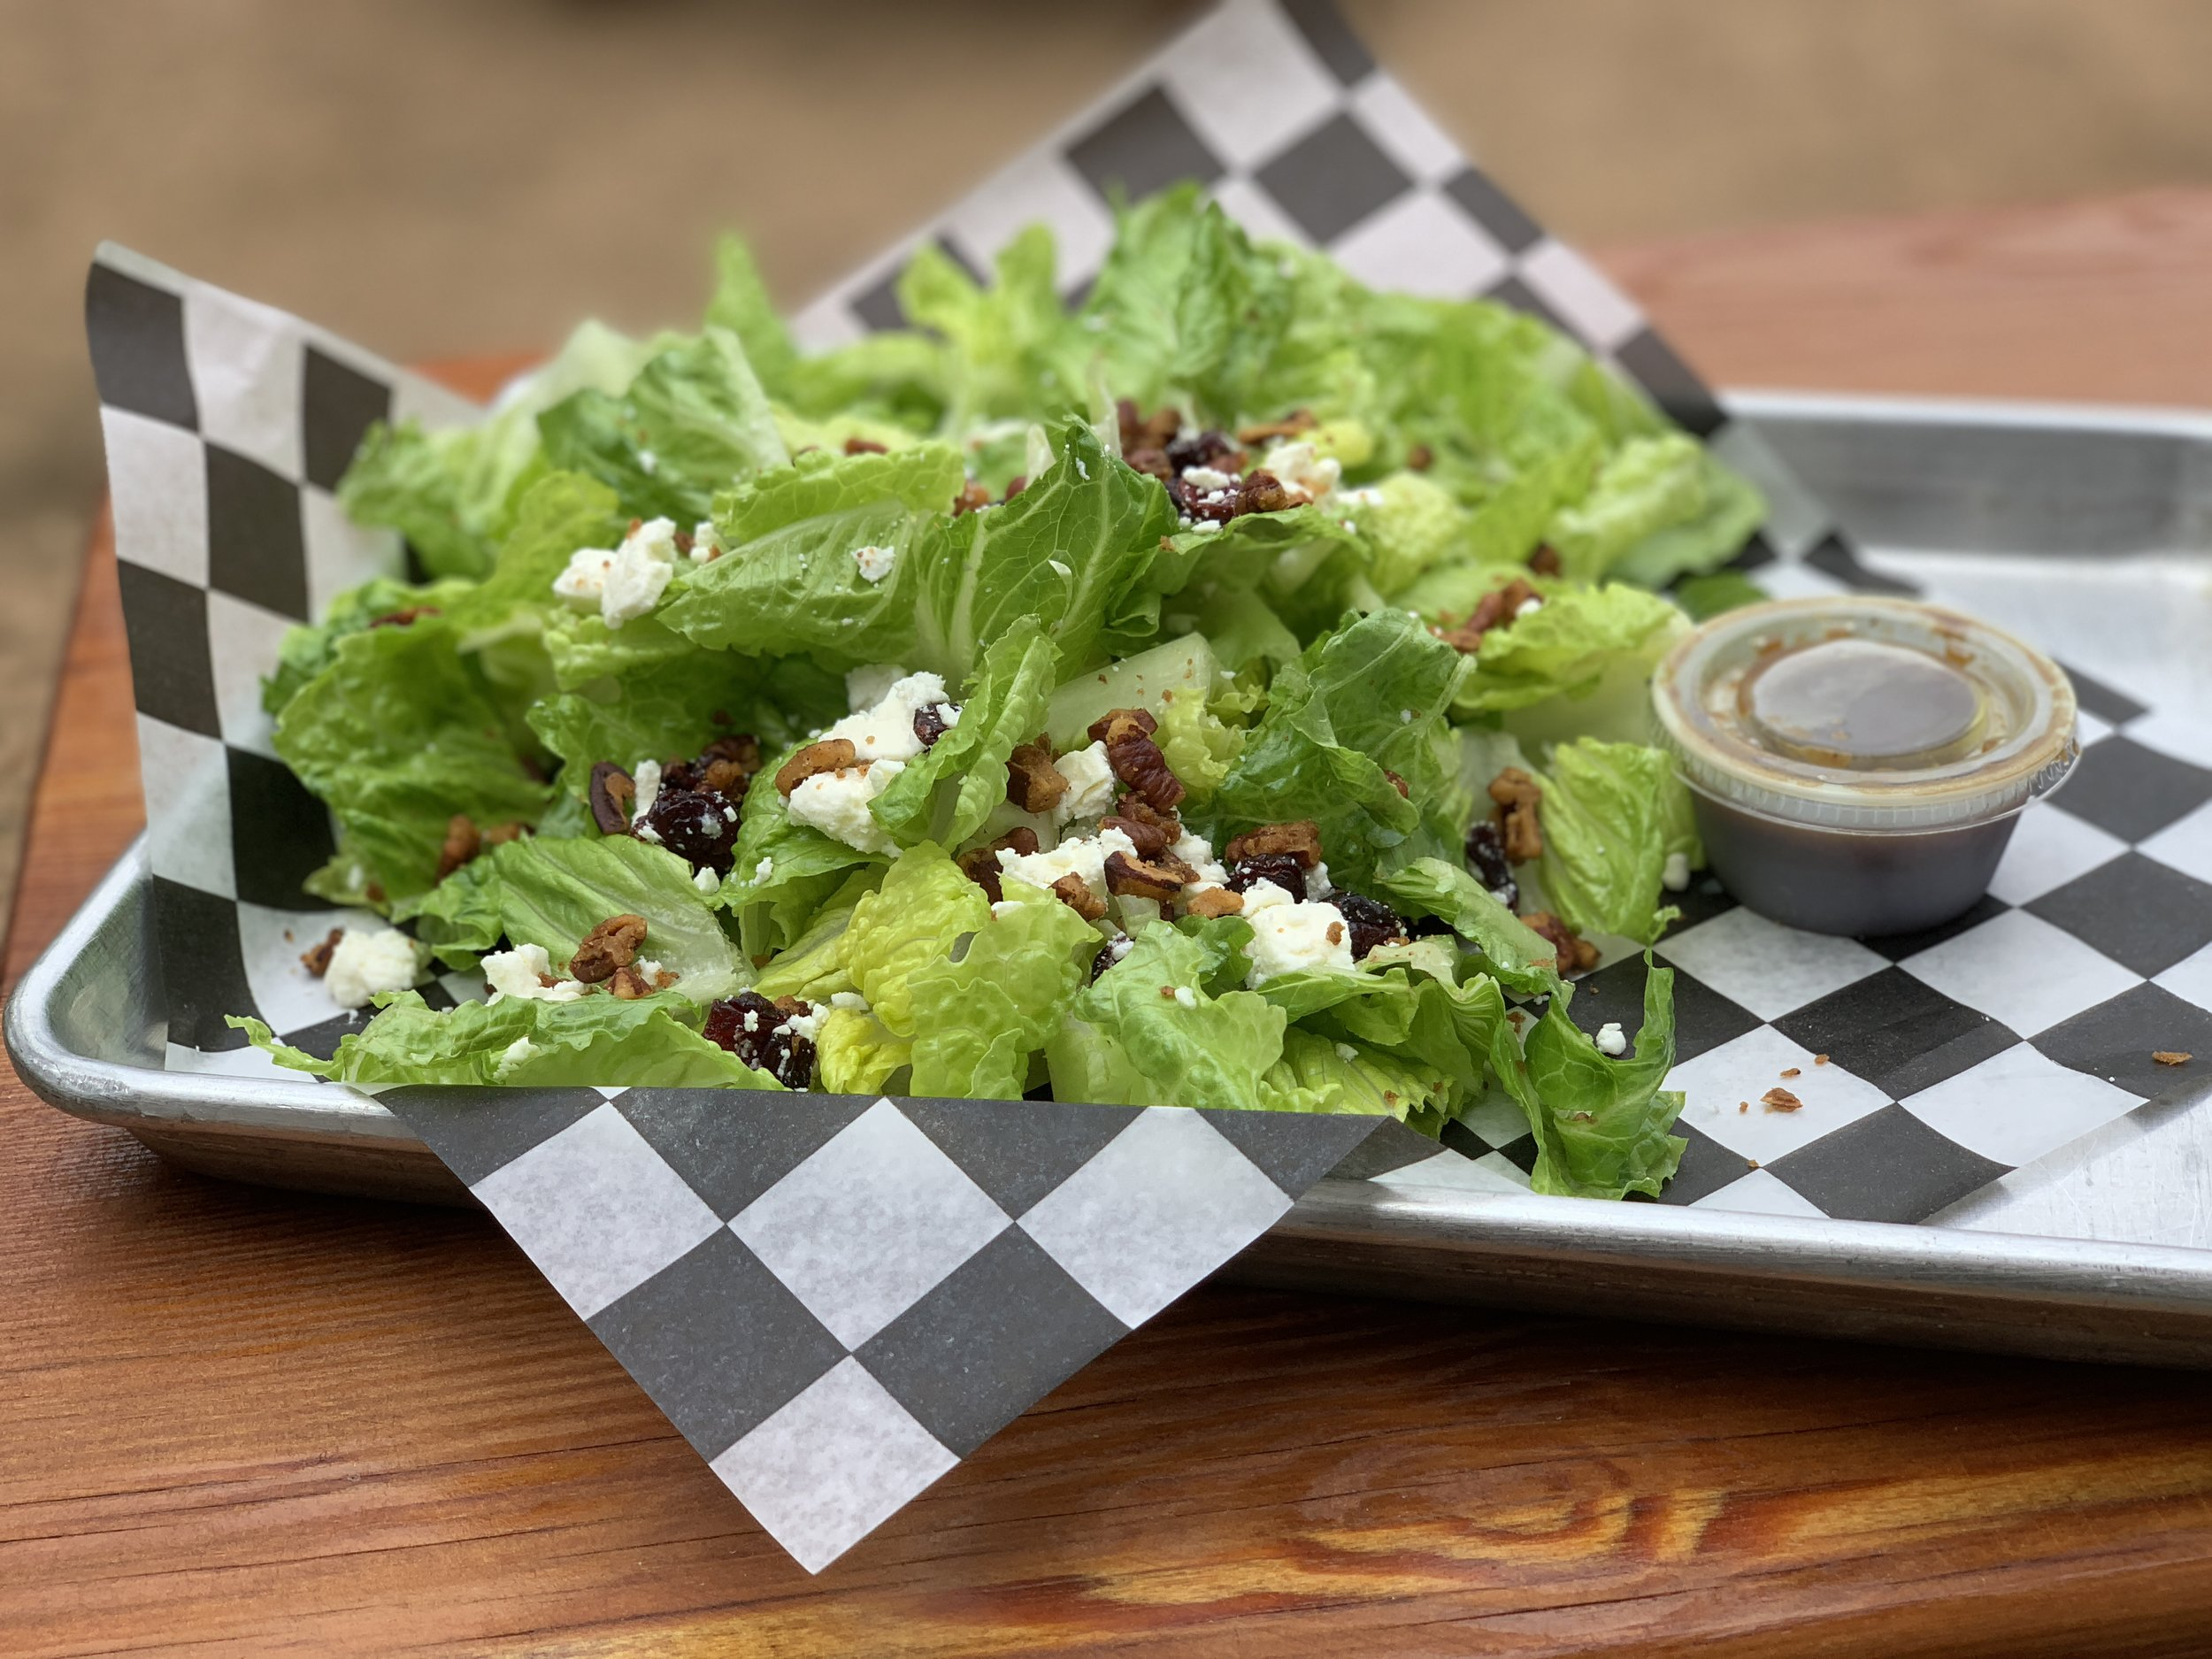 Harvest Salad - spicy, candied pecans, feta and cranberries on a bed of romaine with balsamic vinaigrette dressing